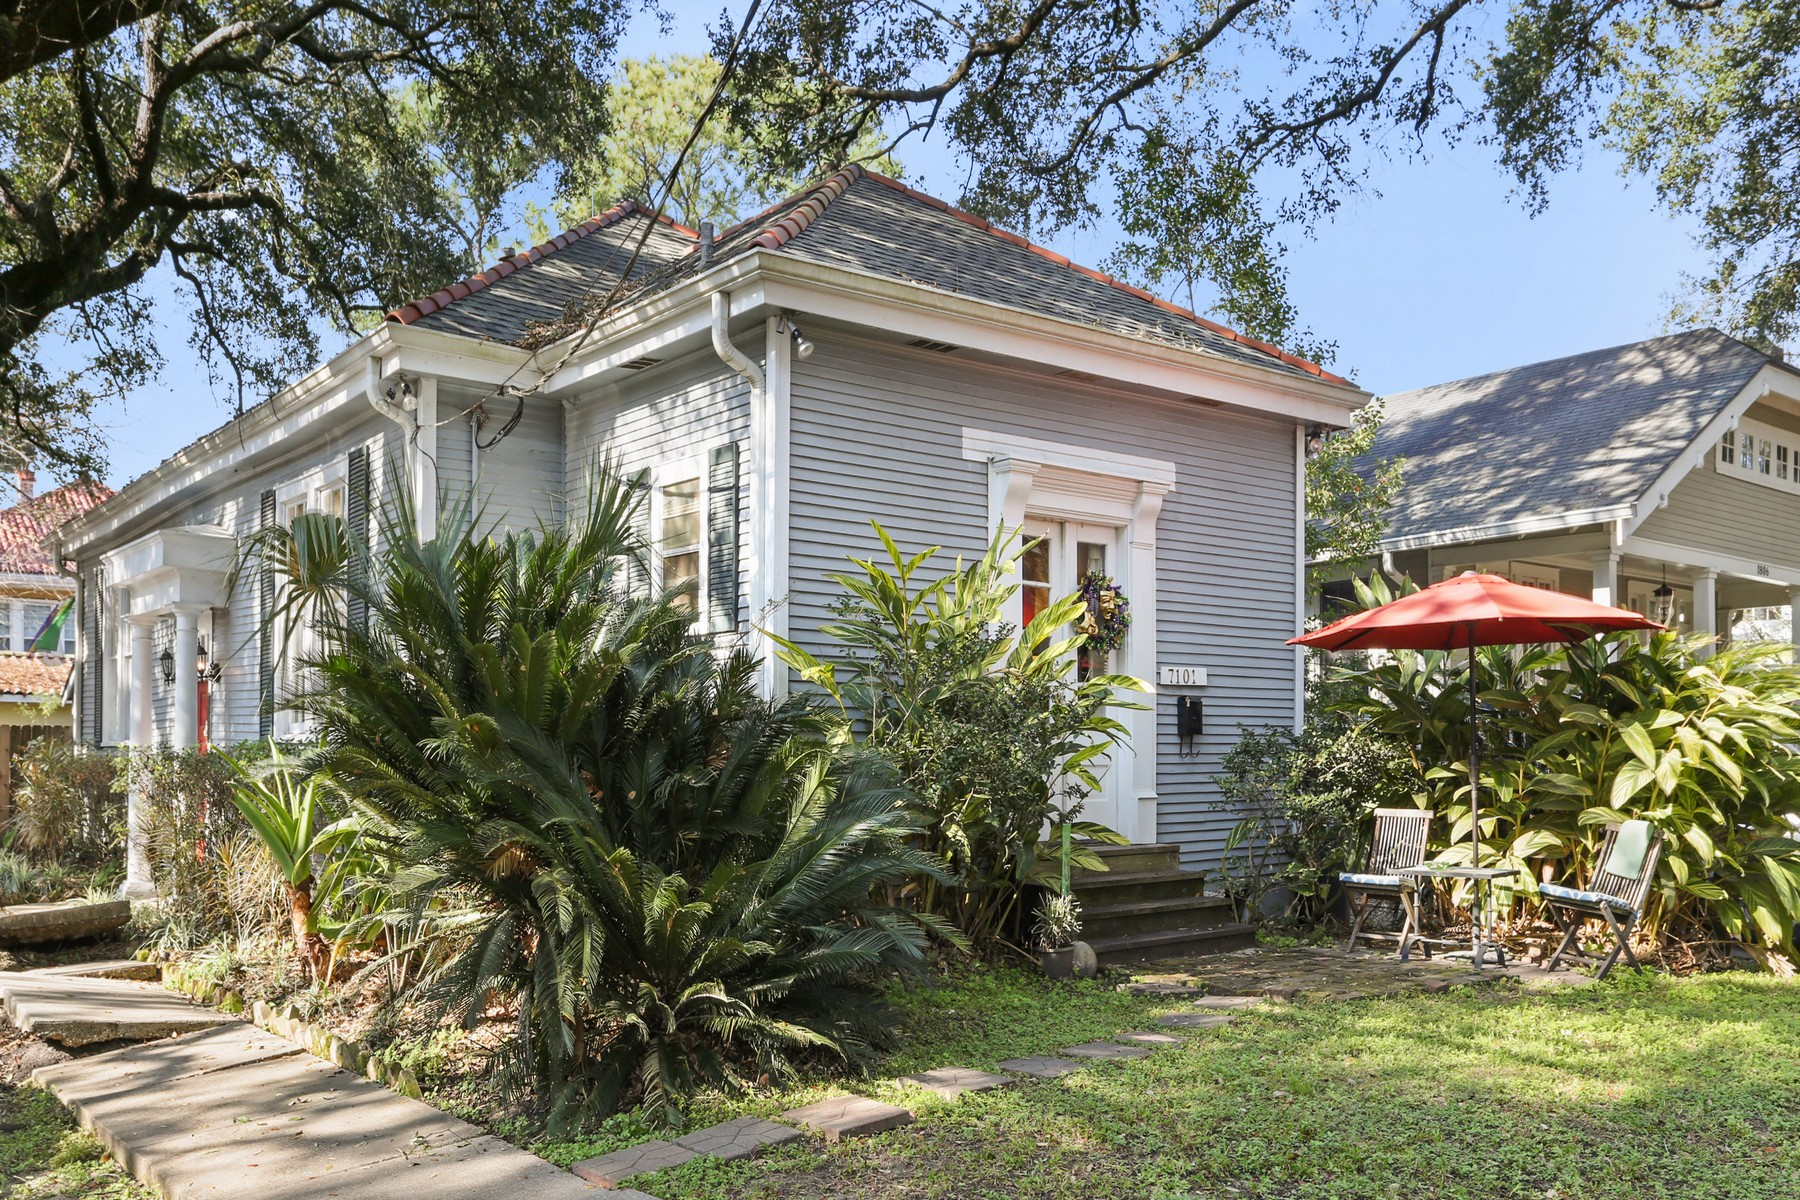 Multi-Family Home for Sale at 7101 Hickory Street New Orleans, Louisiana 70118 United States